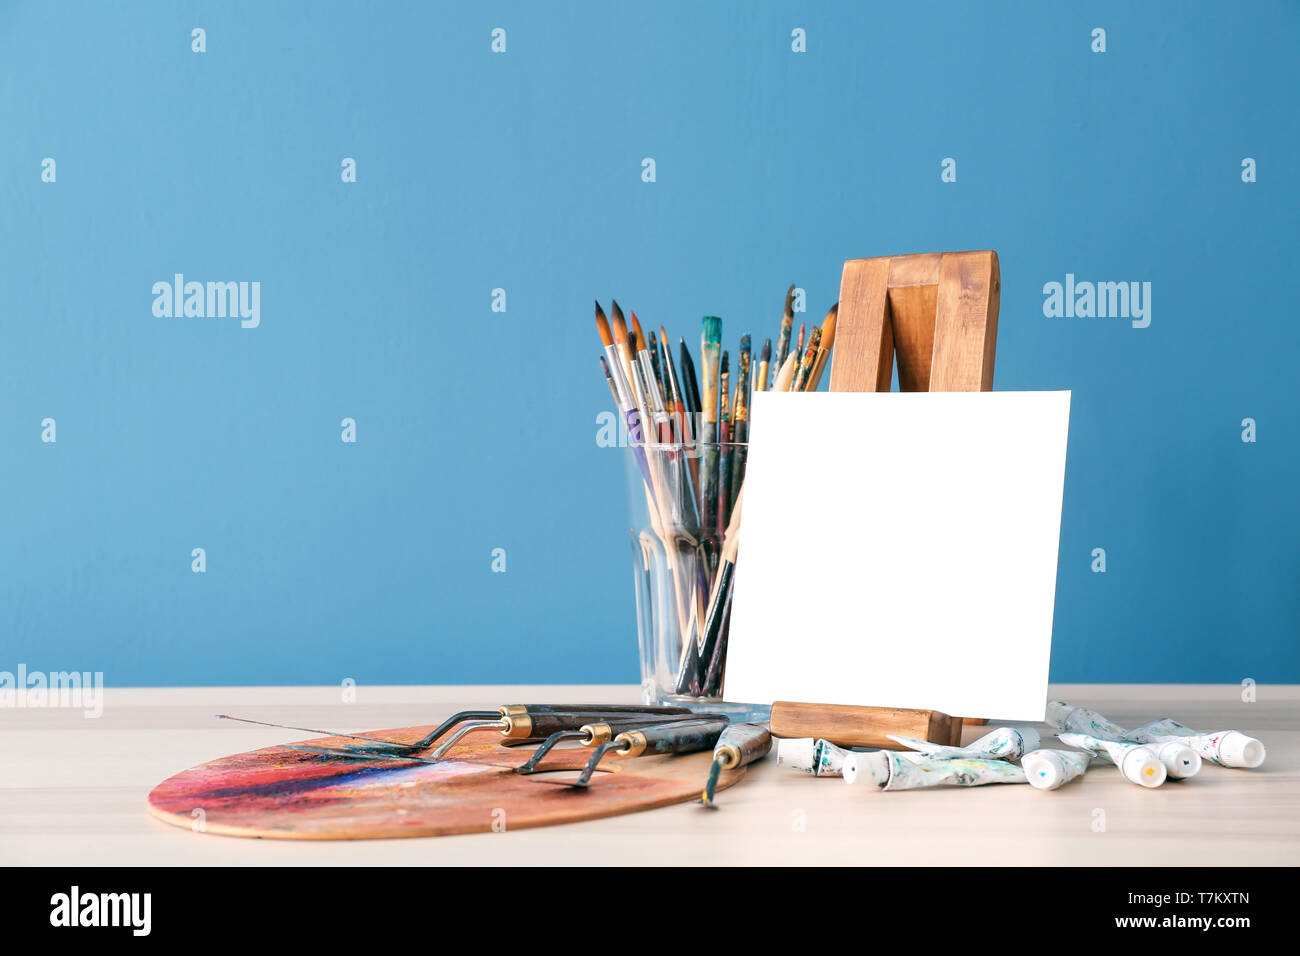 Set of painting tools with canvas on table against color